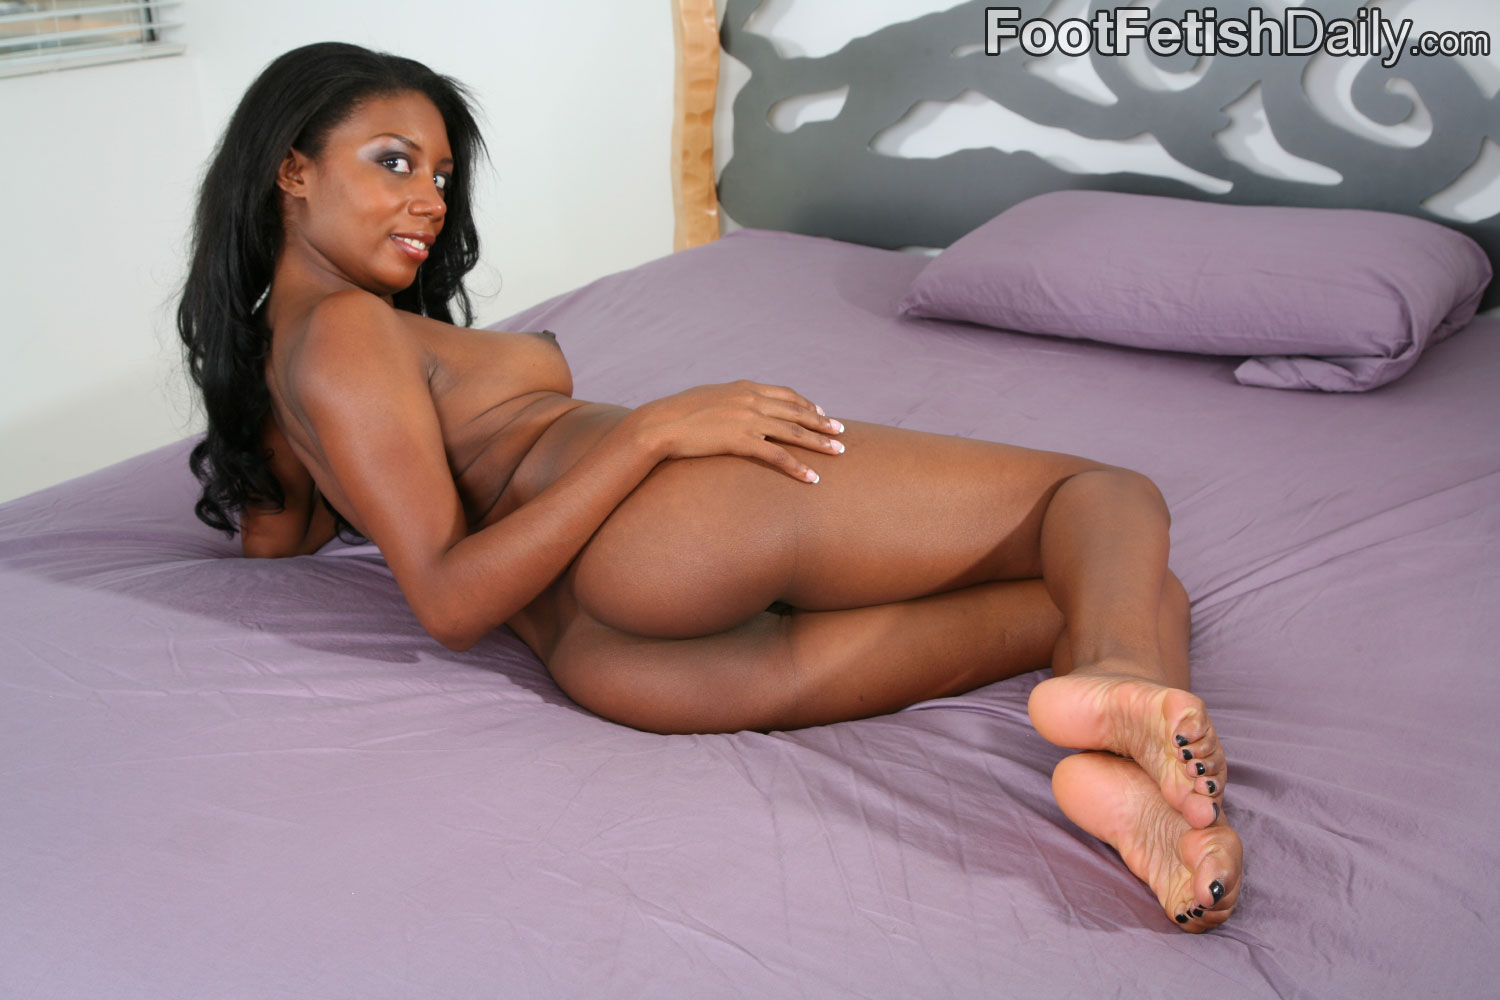 Slutty woman in tan pantyhose